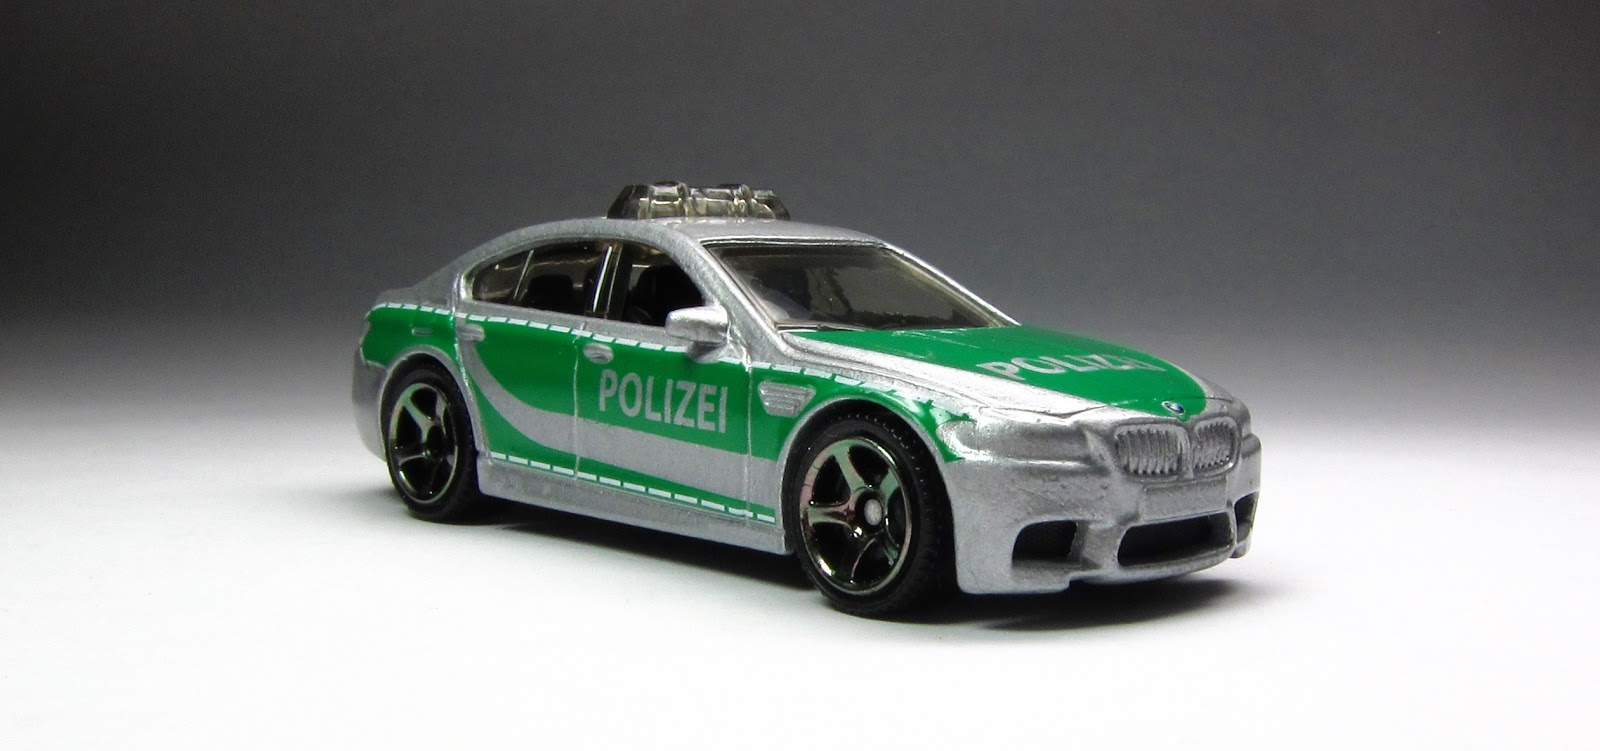 first look 2015 matchbox bmw m5 police thelamleygroup. Black Bedroom Furniture Sets. Home Design Ideas